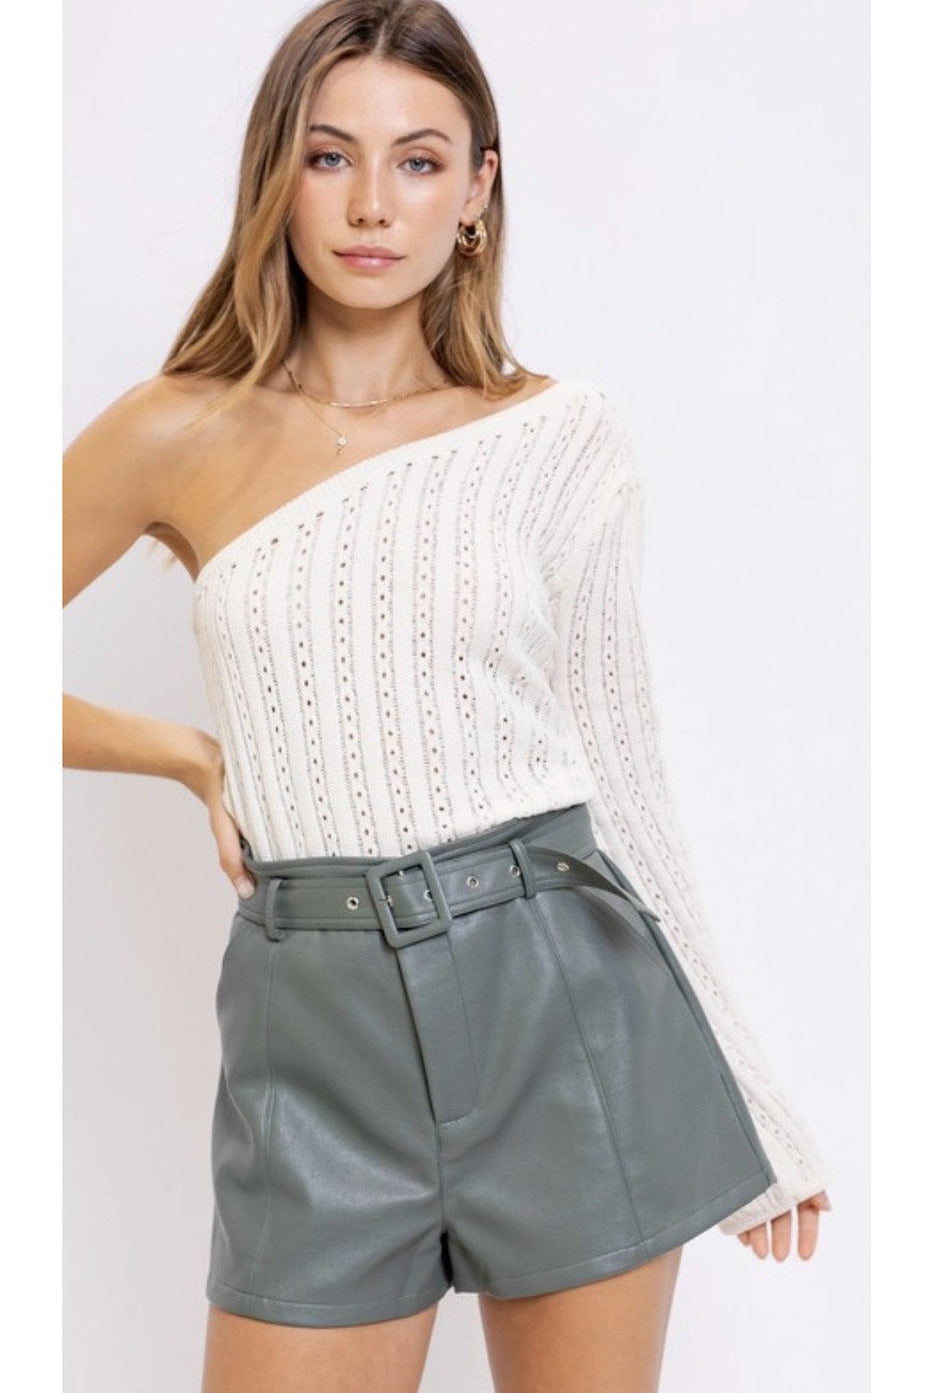 Eliana One Shoulder Top